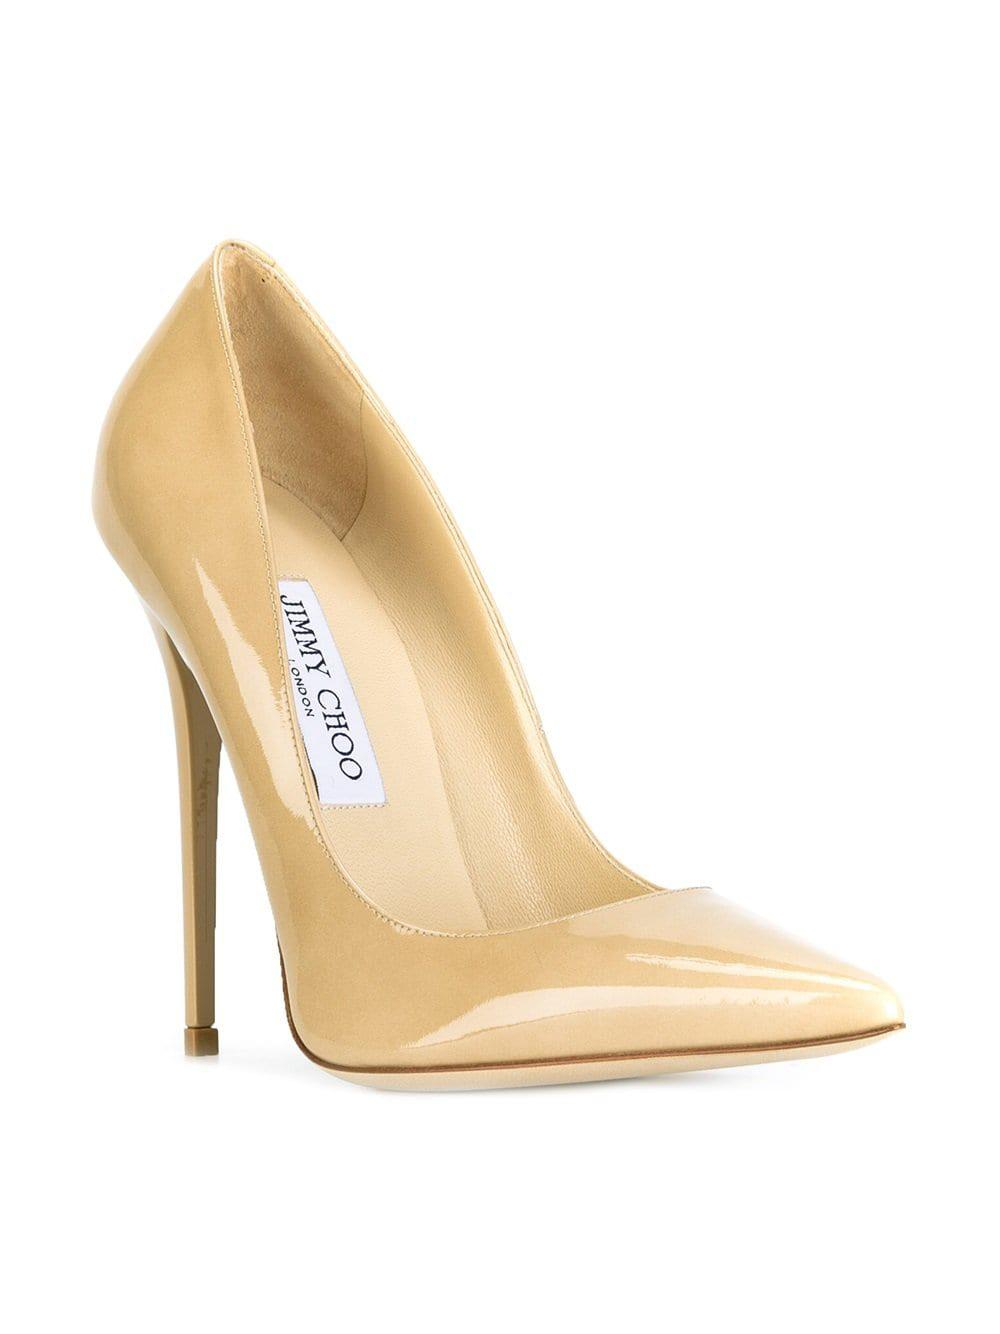 19568e8faeaa Lyst - Jimmy Choo Anouk 120 Pumps